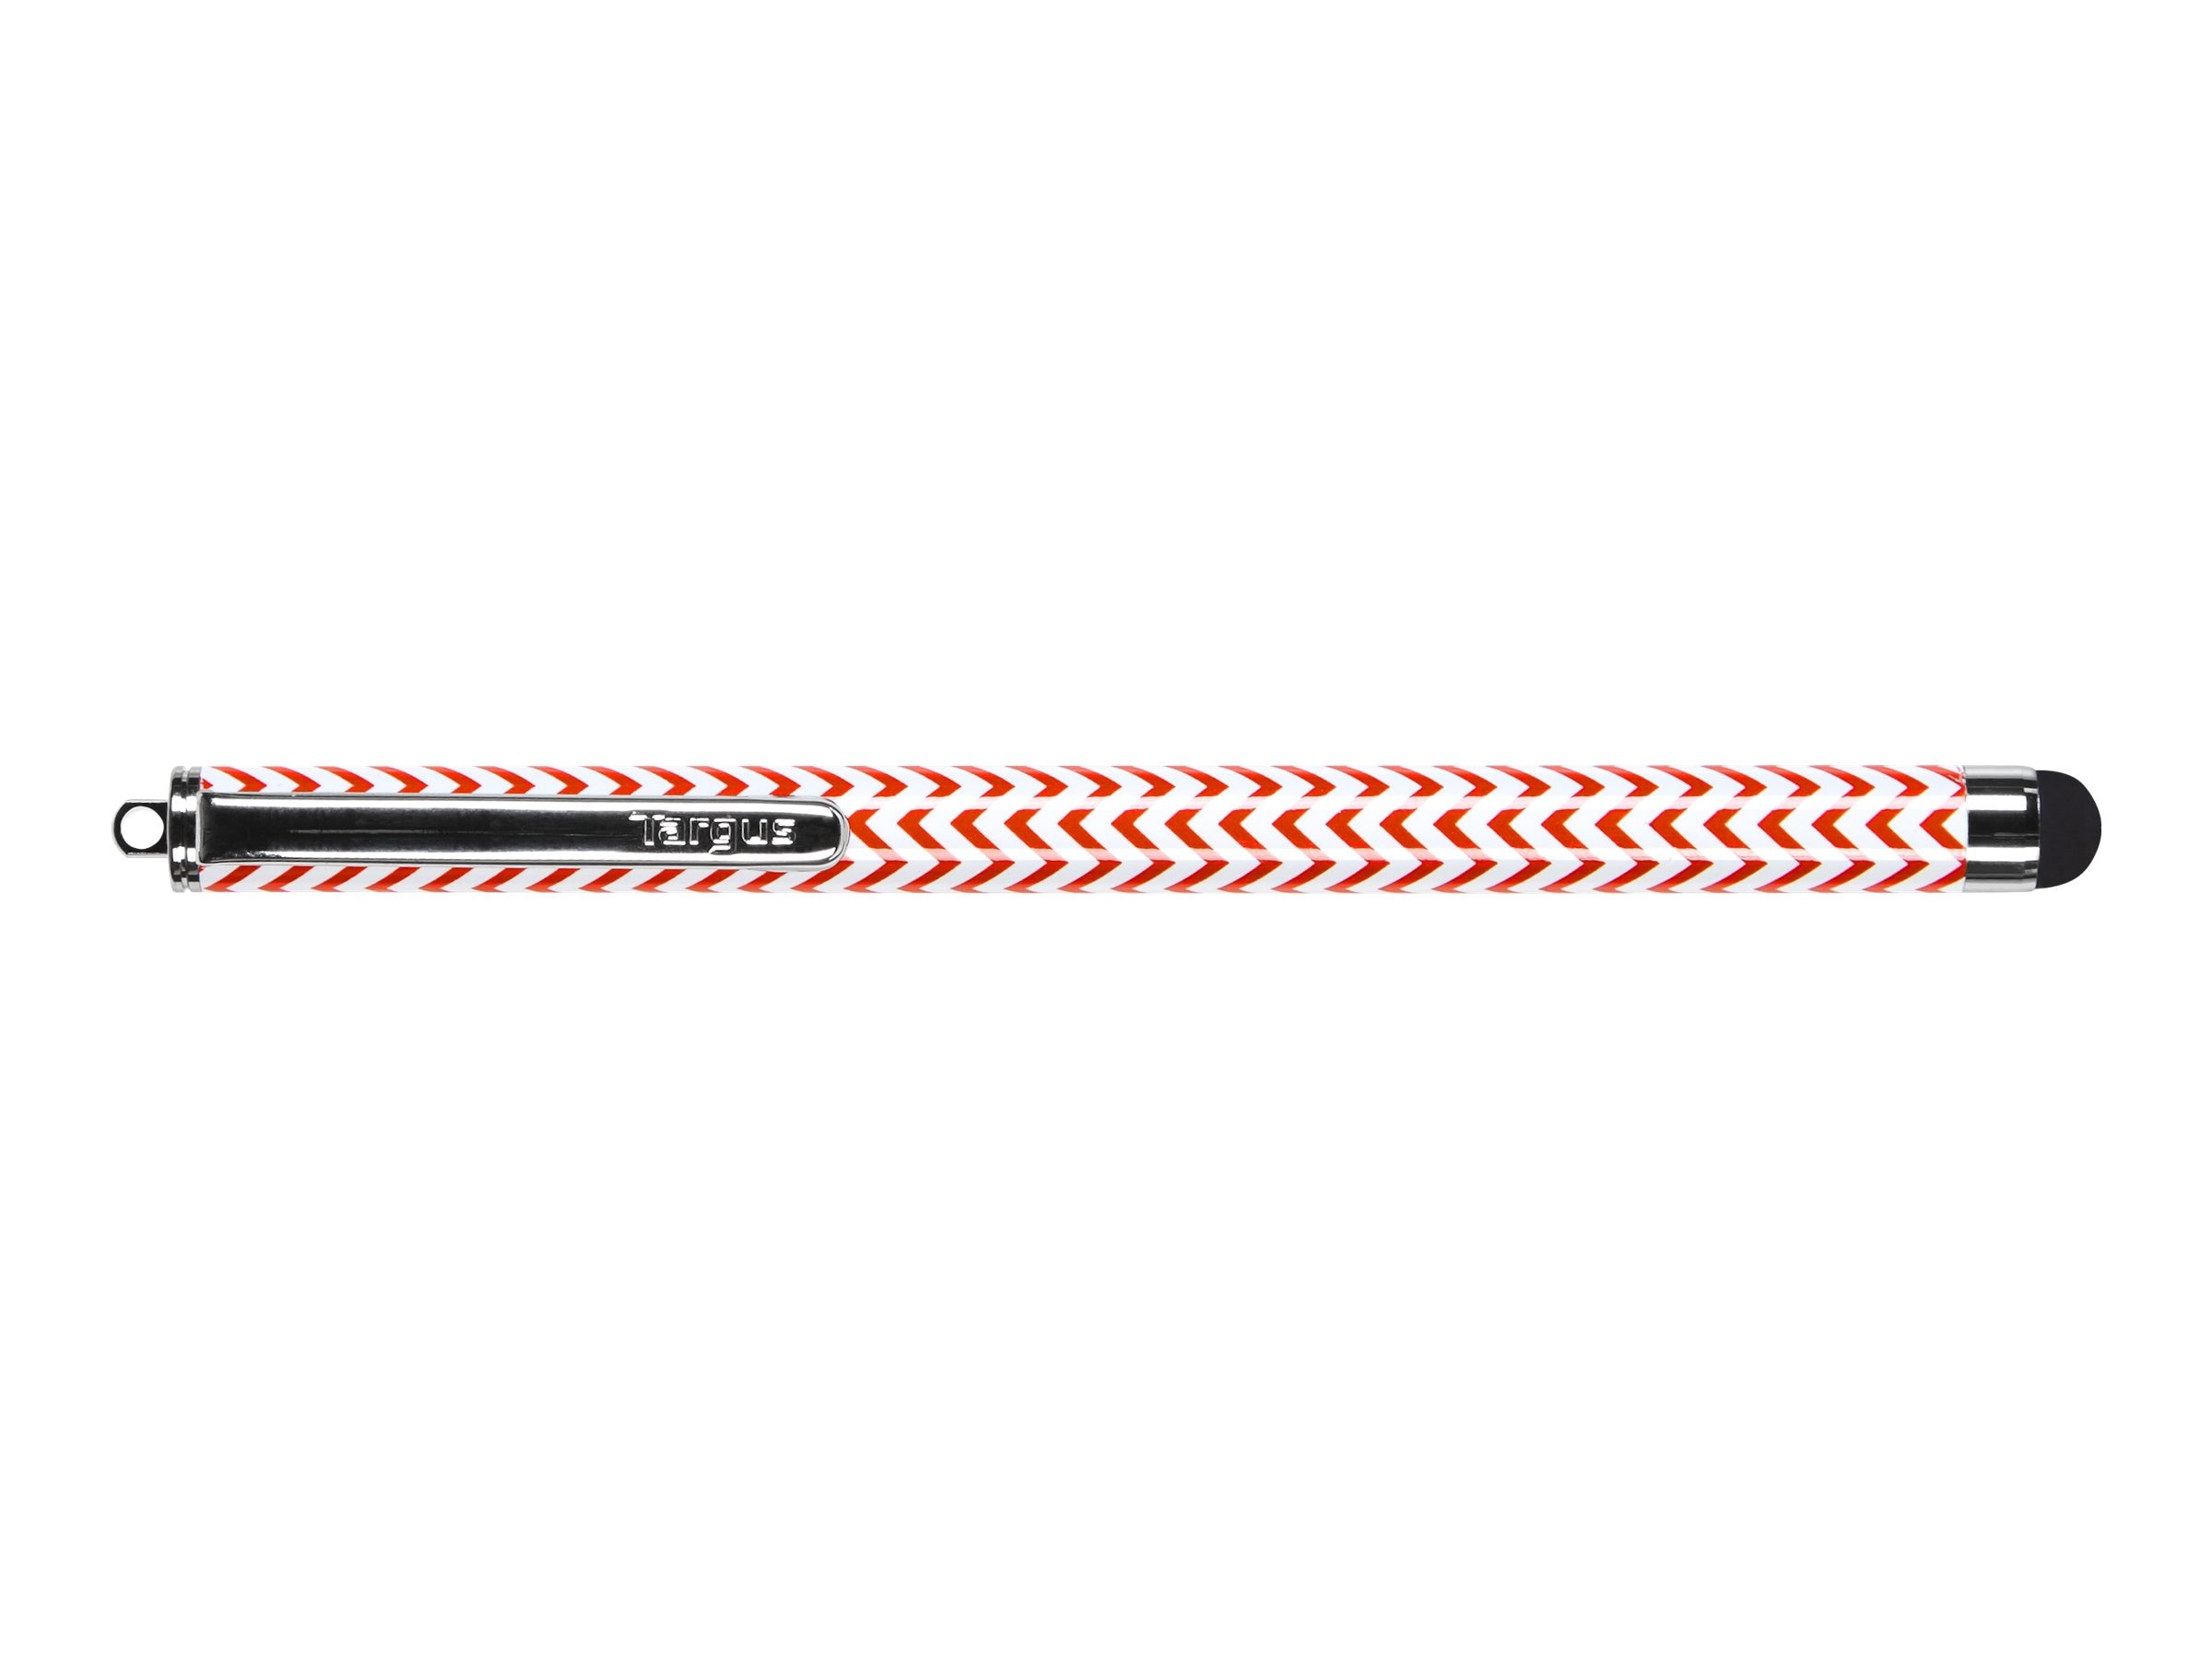 Targus Chevron Patterned Stylus, Red, AMM01B14US